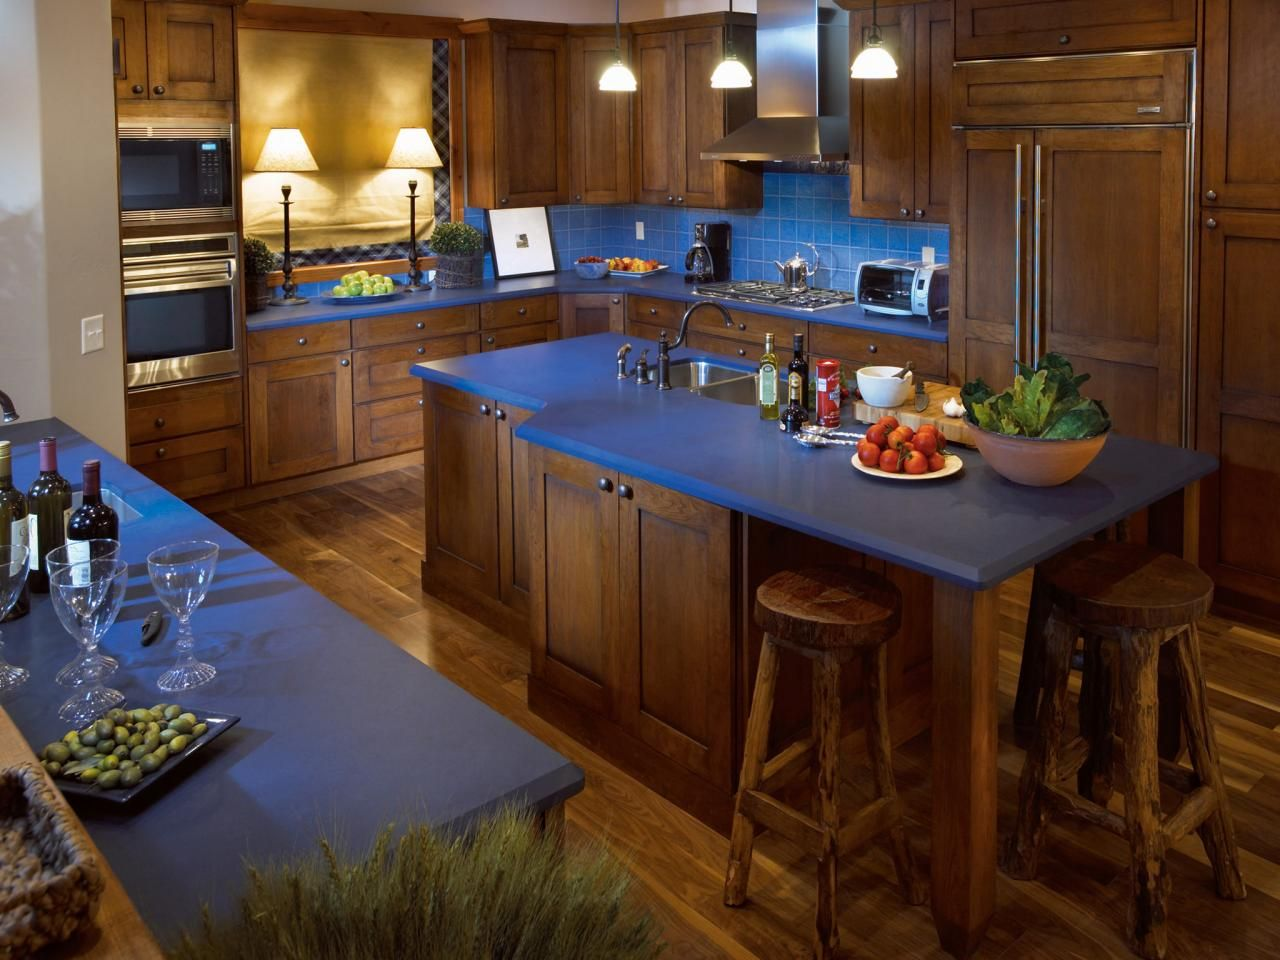 Kitchen Island Color Options Blue Kitchen Countertops Blue